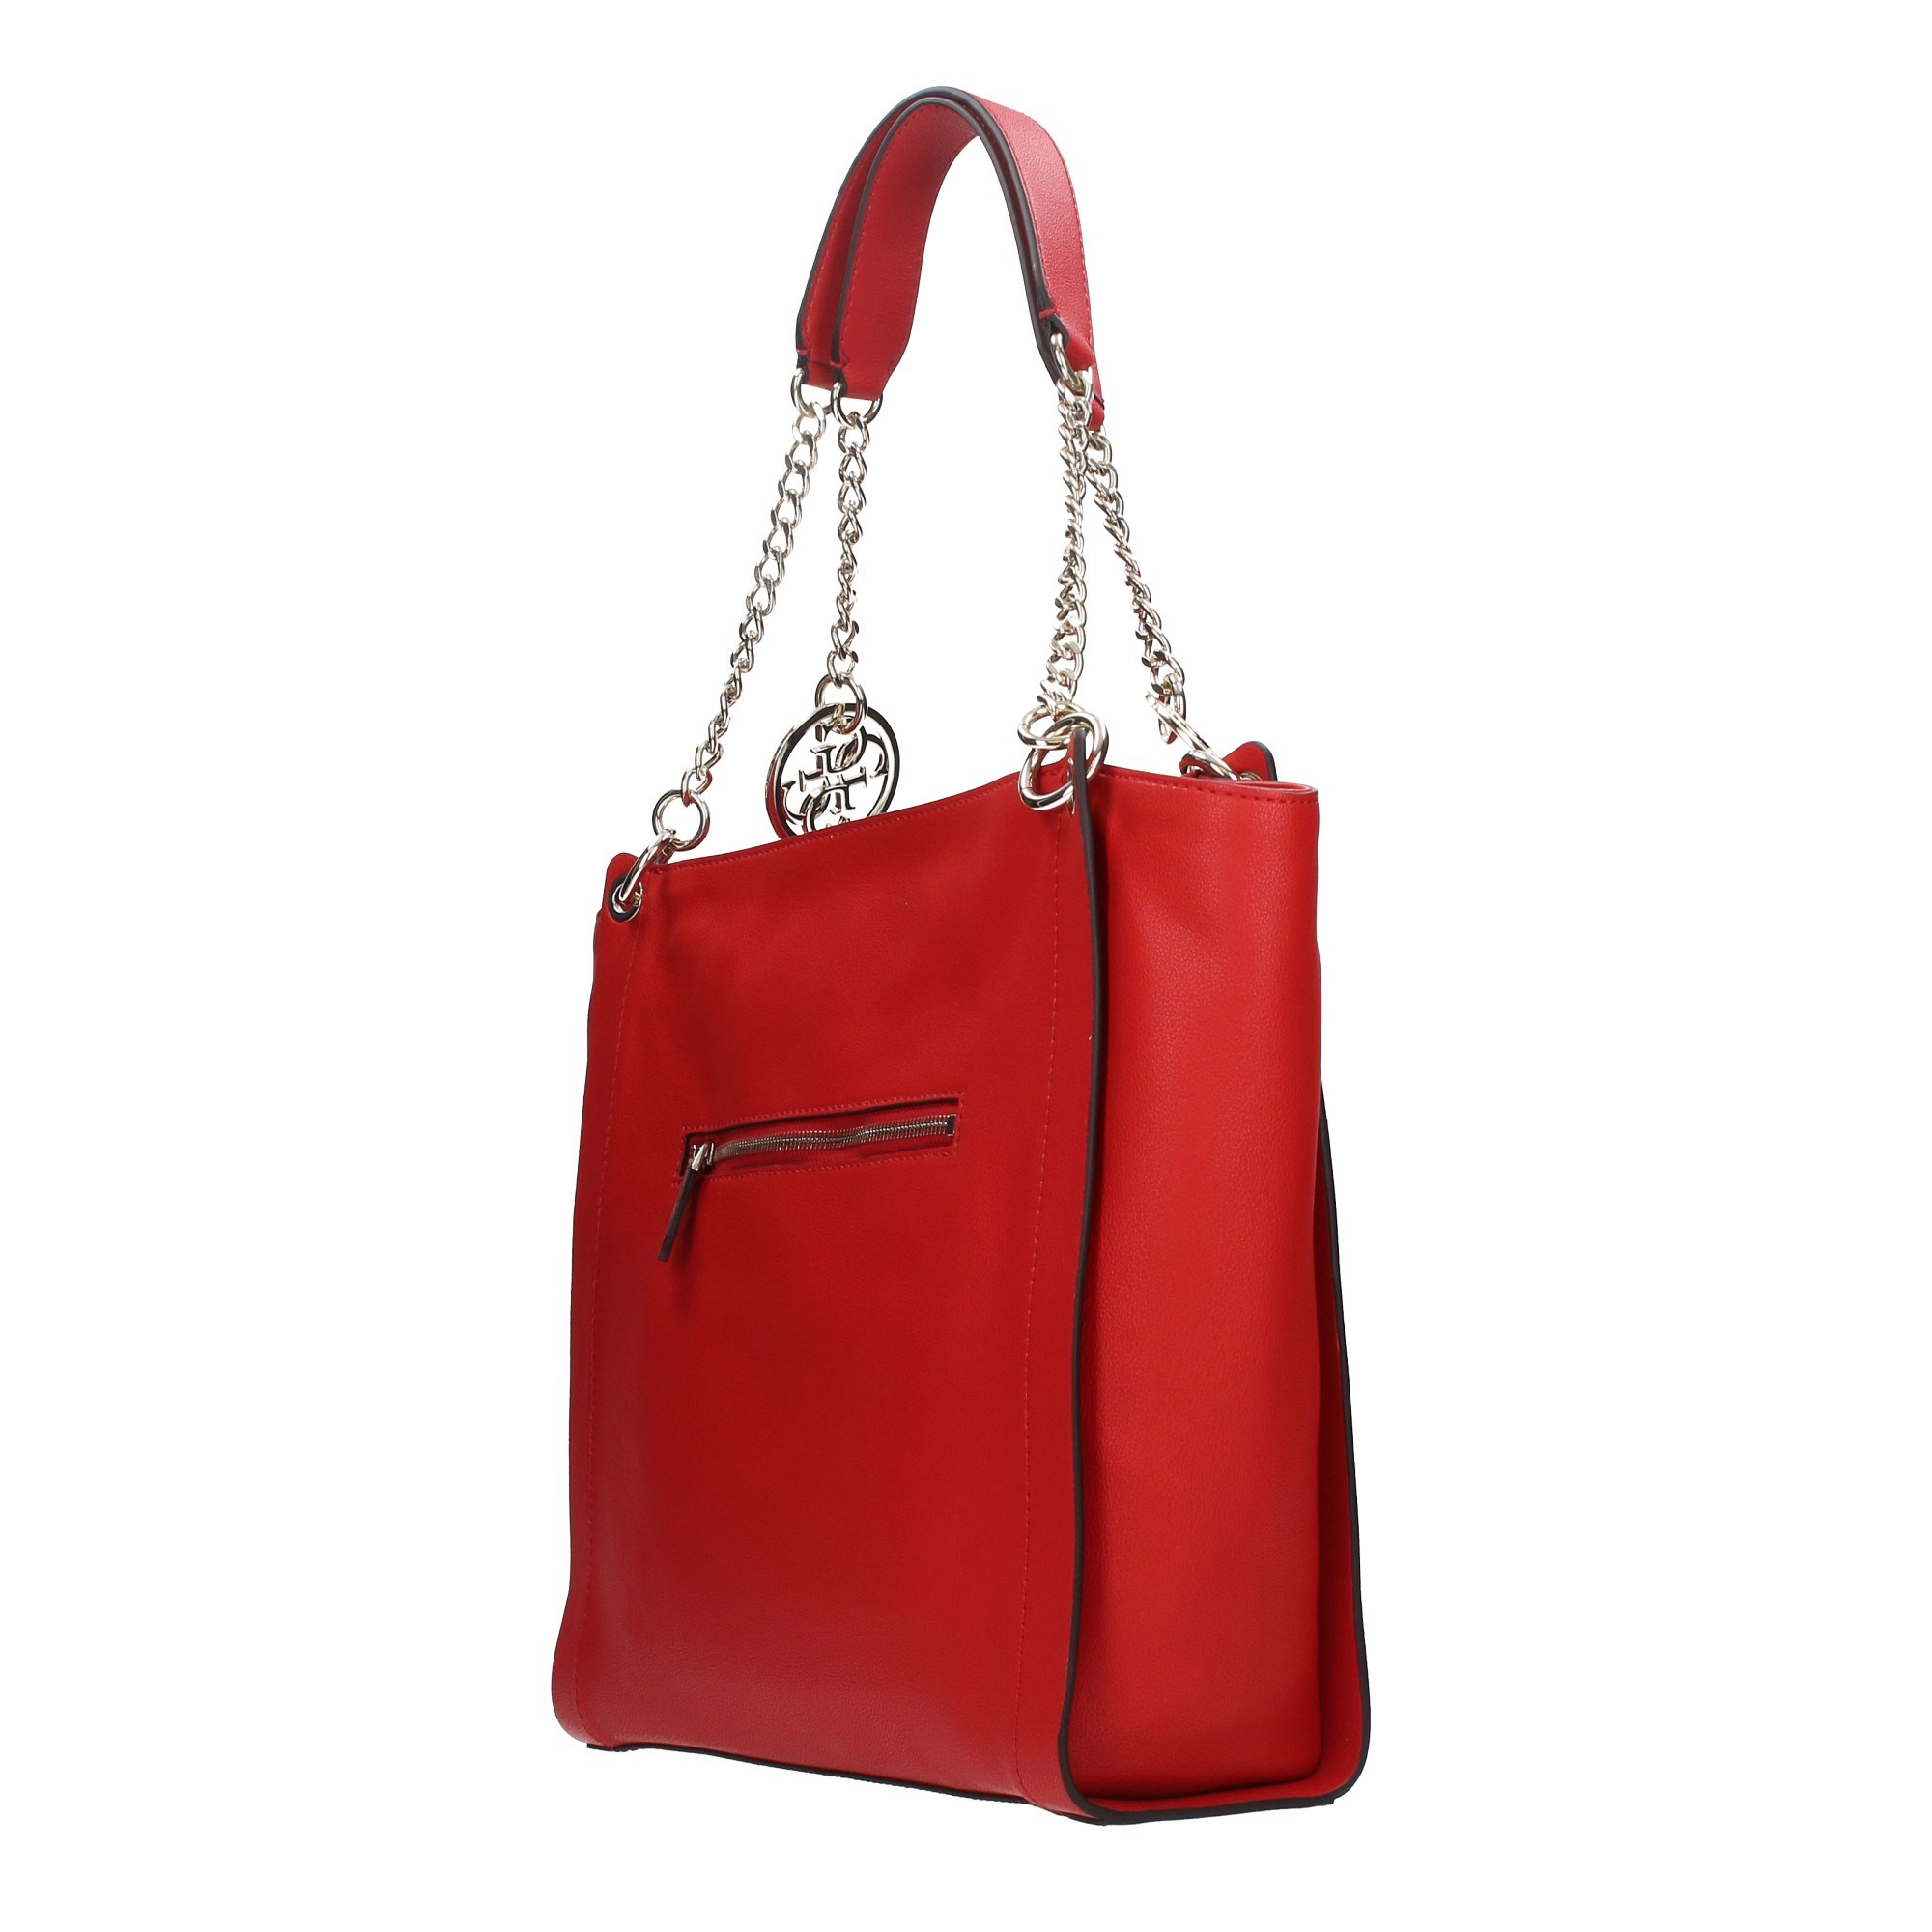 Guess Borse Accessories Women Shoulder Bags Red HWEG74/74230